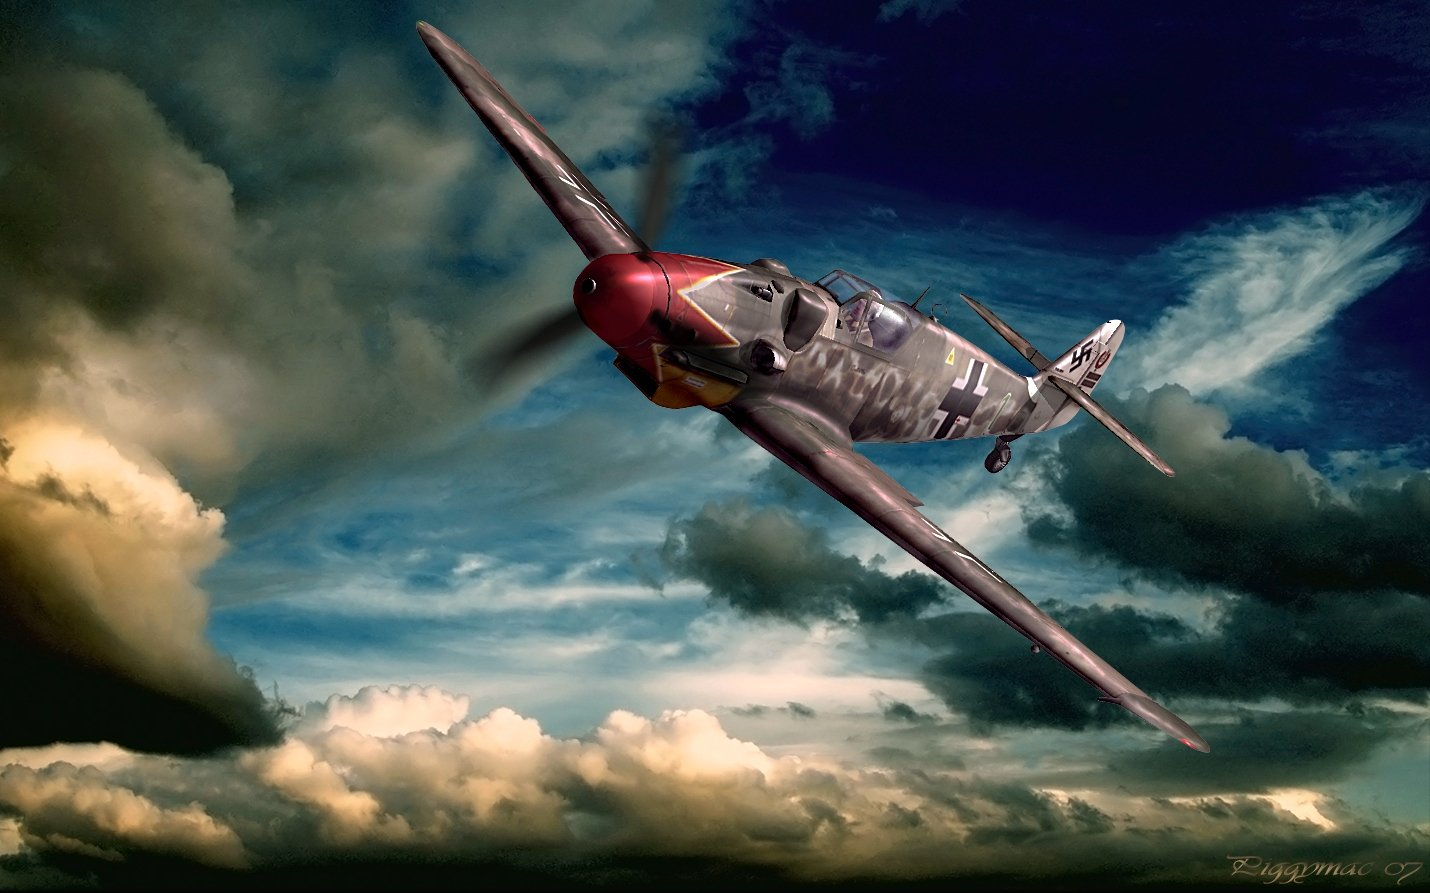 Vintage Airplane Full HD Pics Wallpapers 5931   Amazing 1430x893